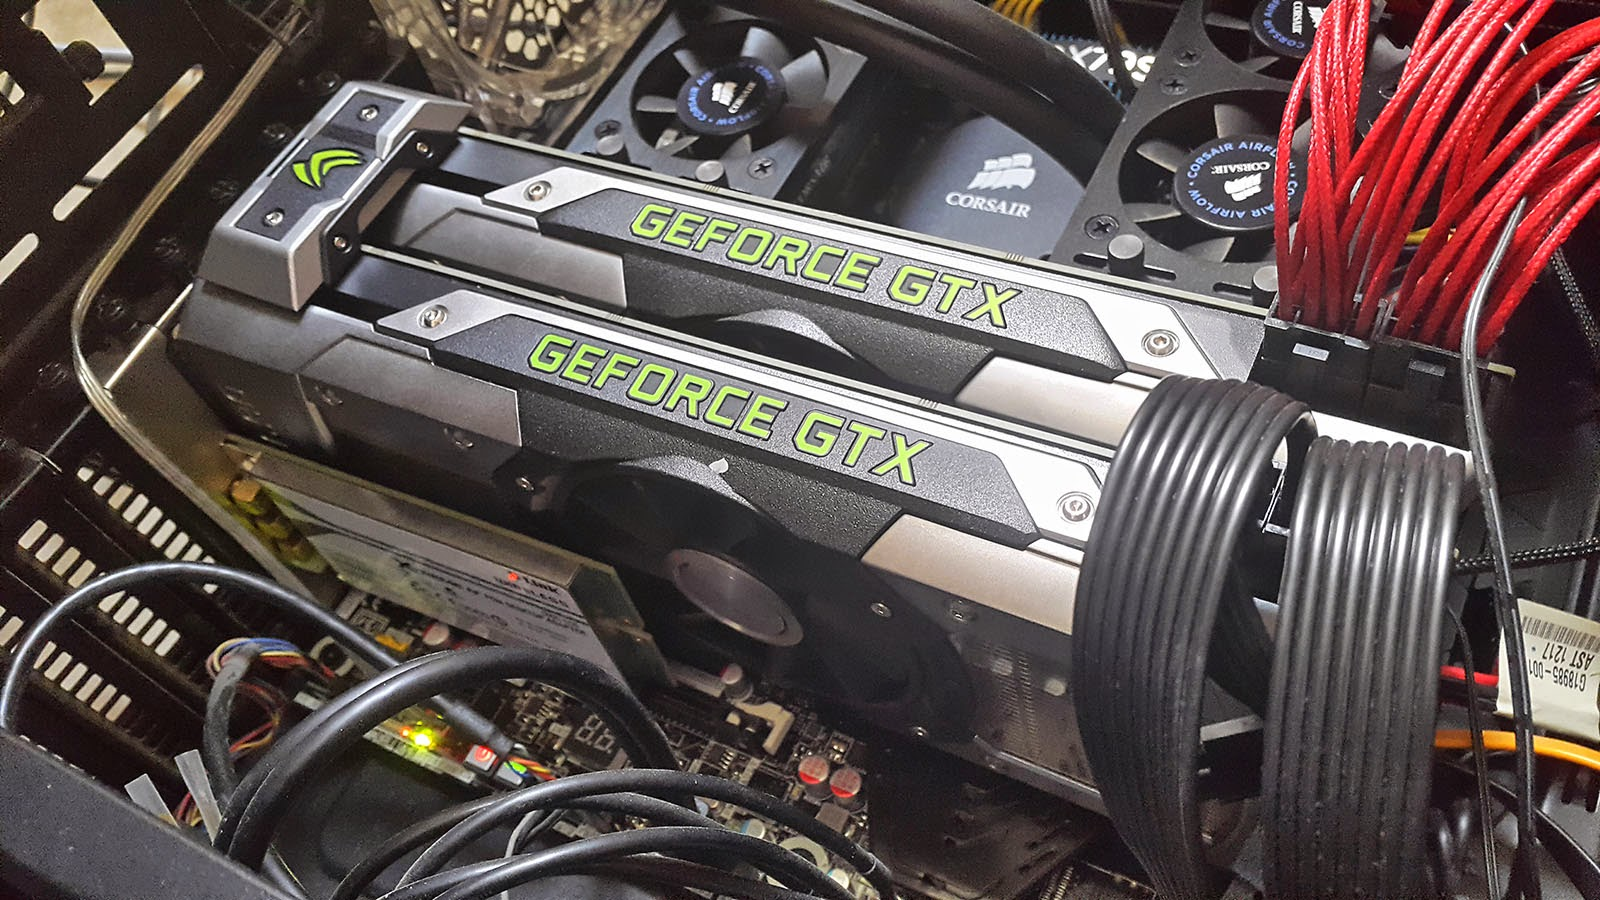 NVIDIA GeForce GTX 690 (x2) - Quad SLI